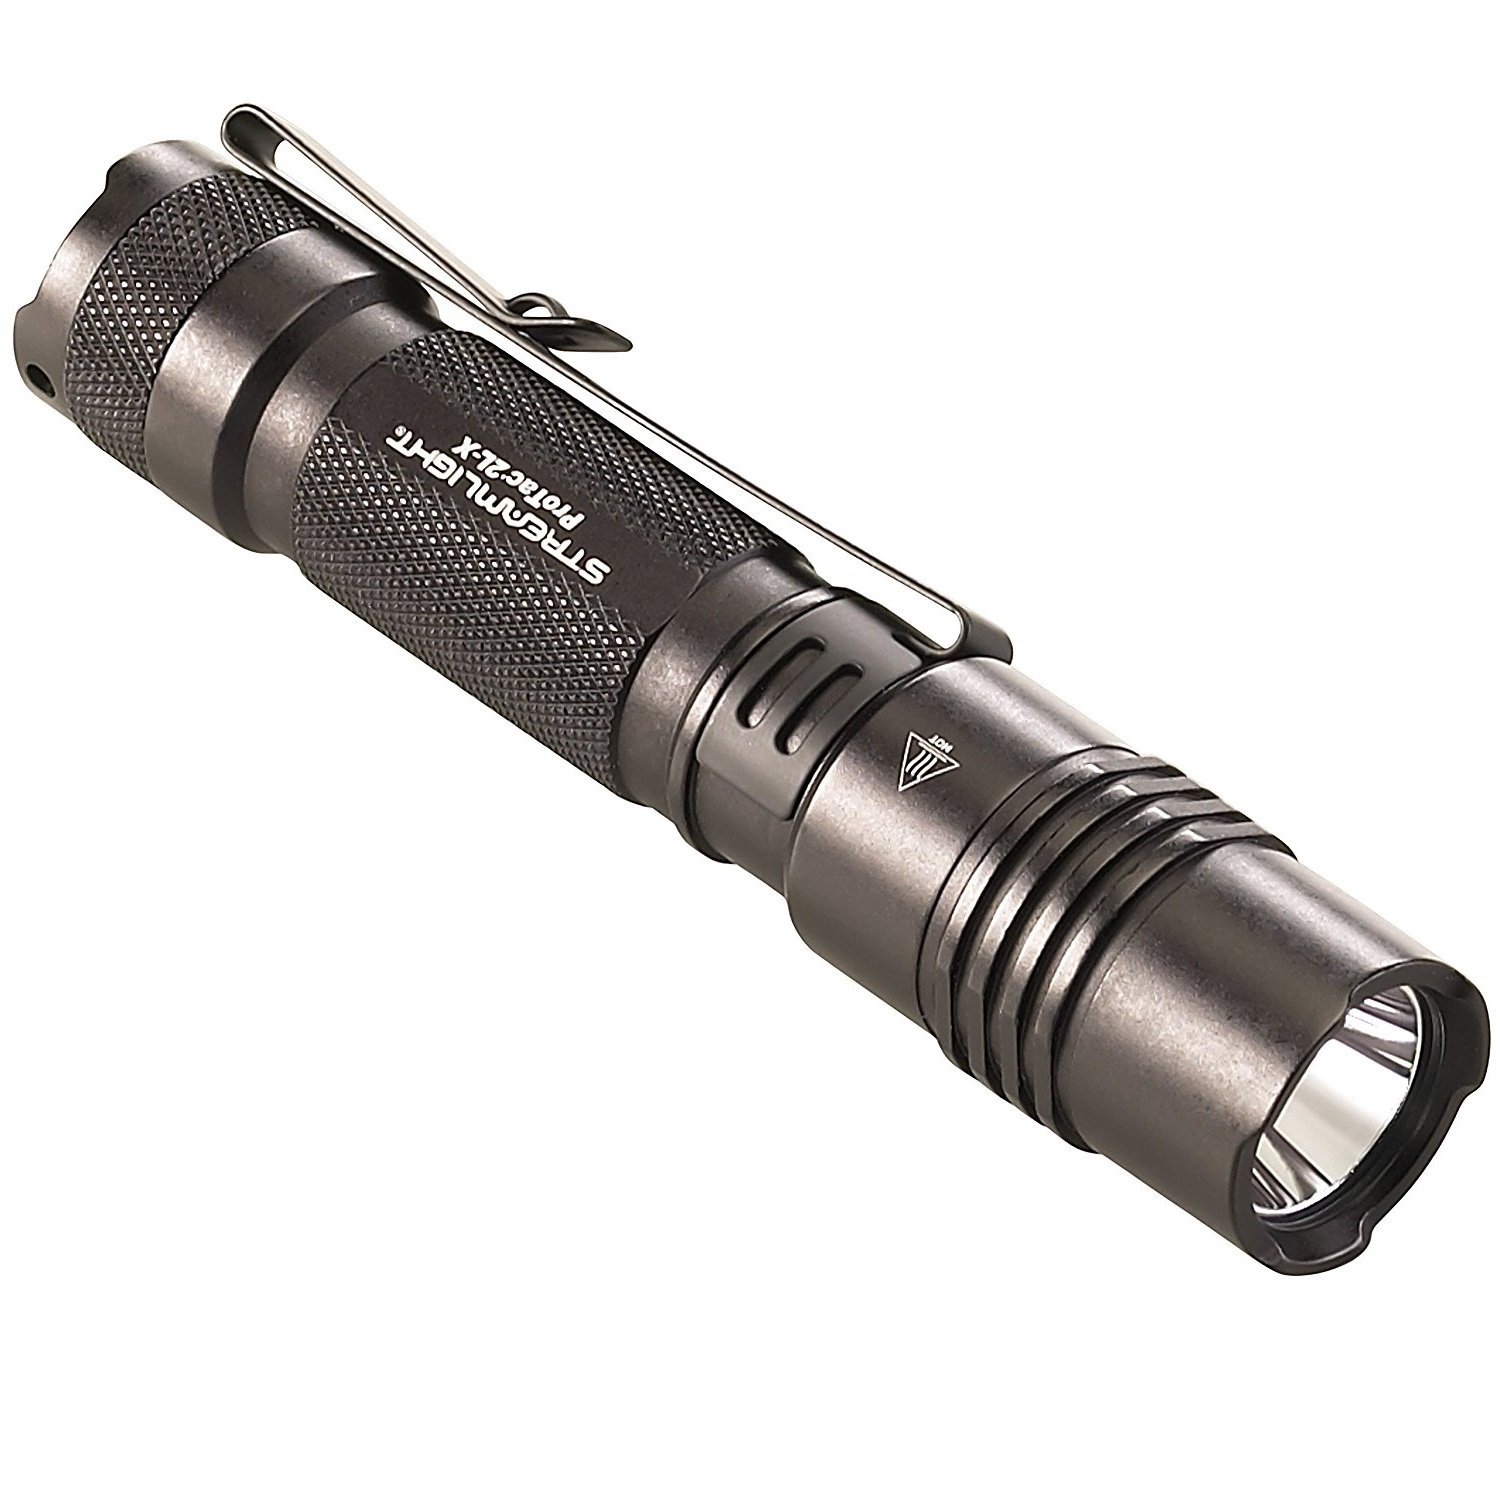 Streamlight ProTac 2L-X USB 500 Lumens Flashlight BlackBox by Streamlight